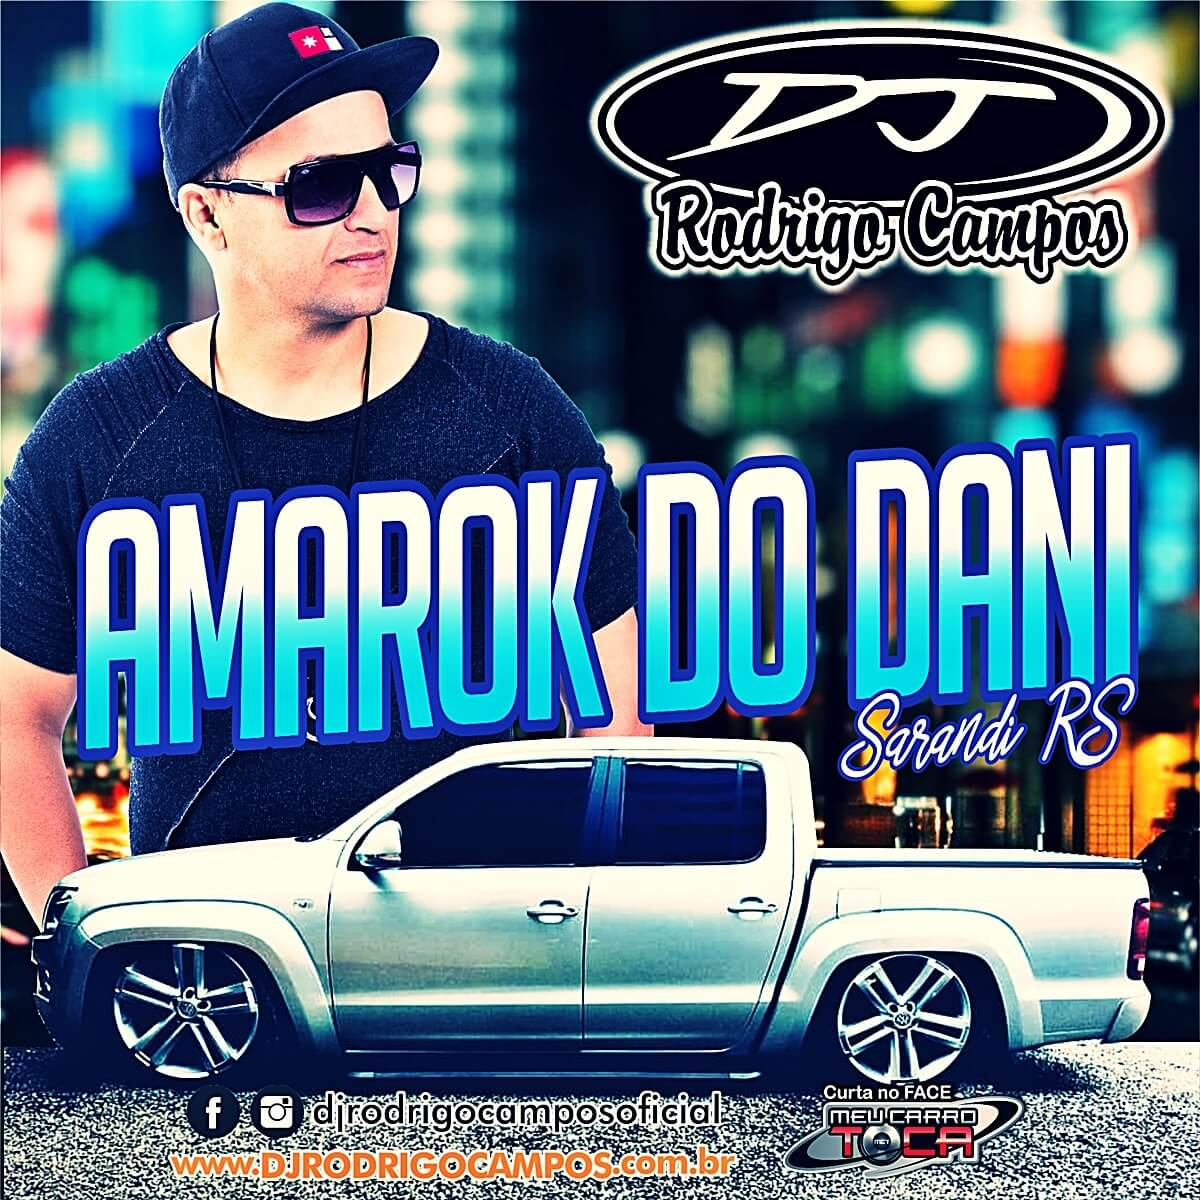 Amarok do Dani Sarandi RS Sertanejo